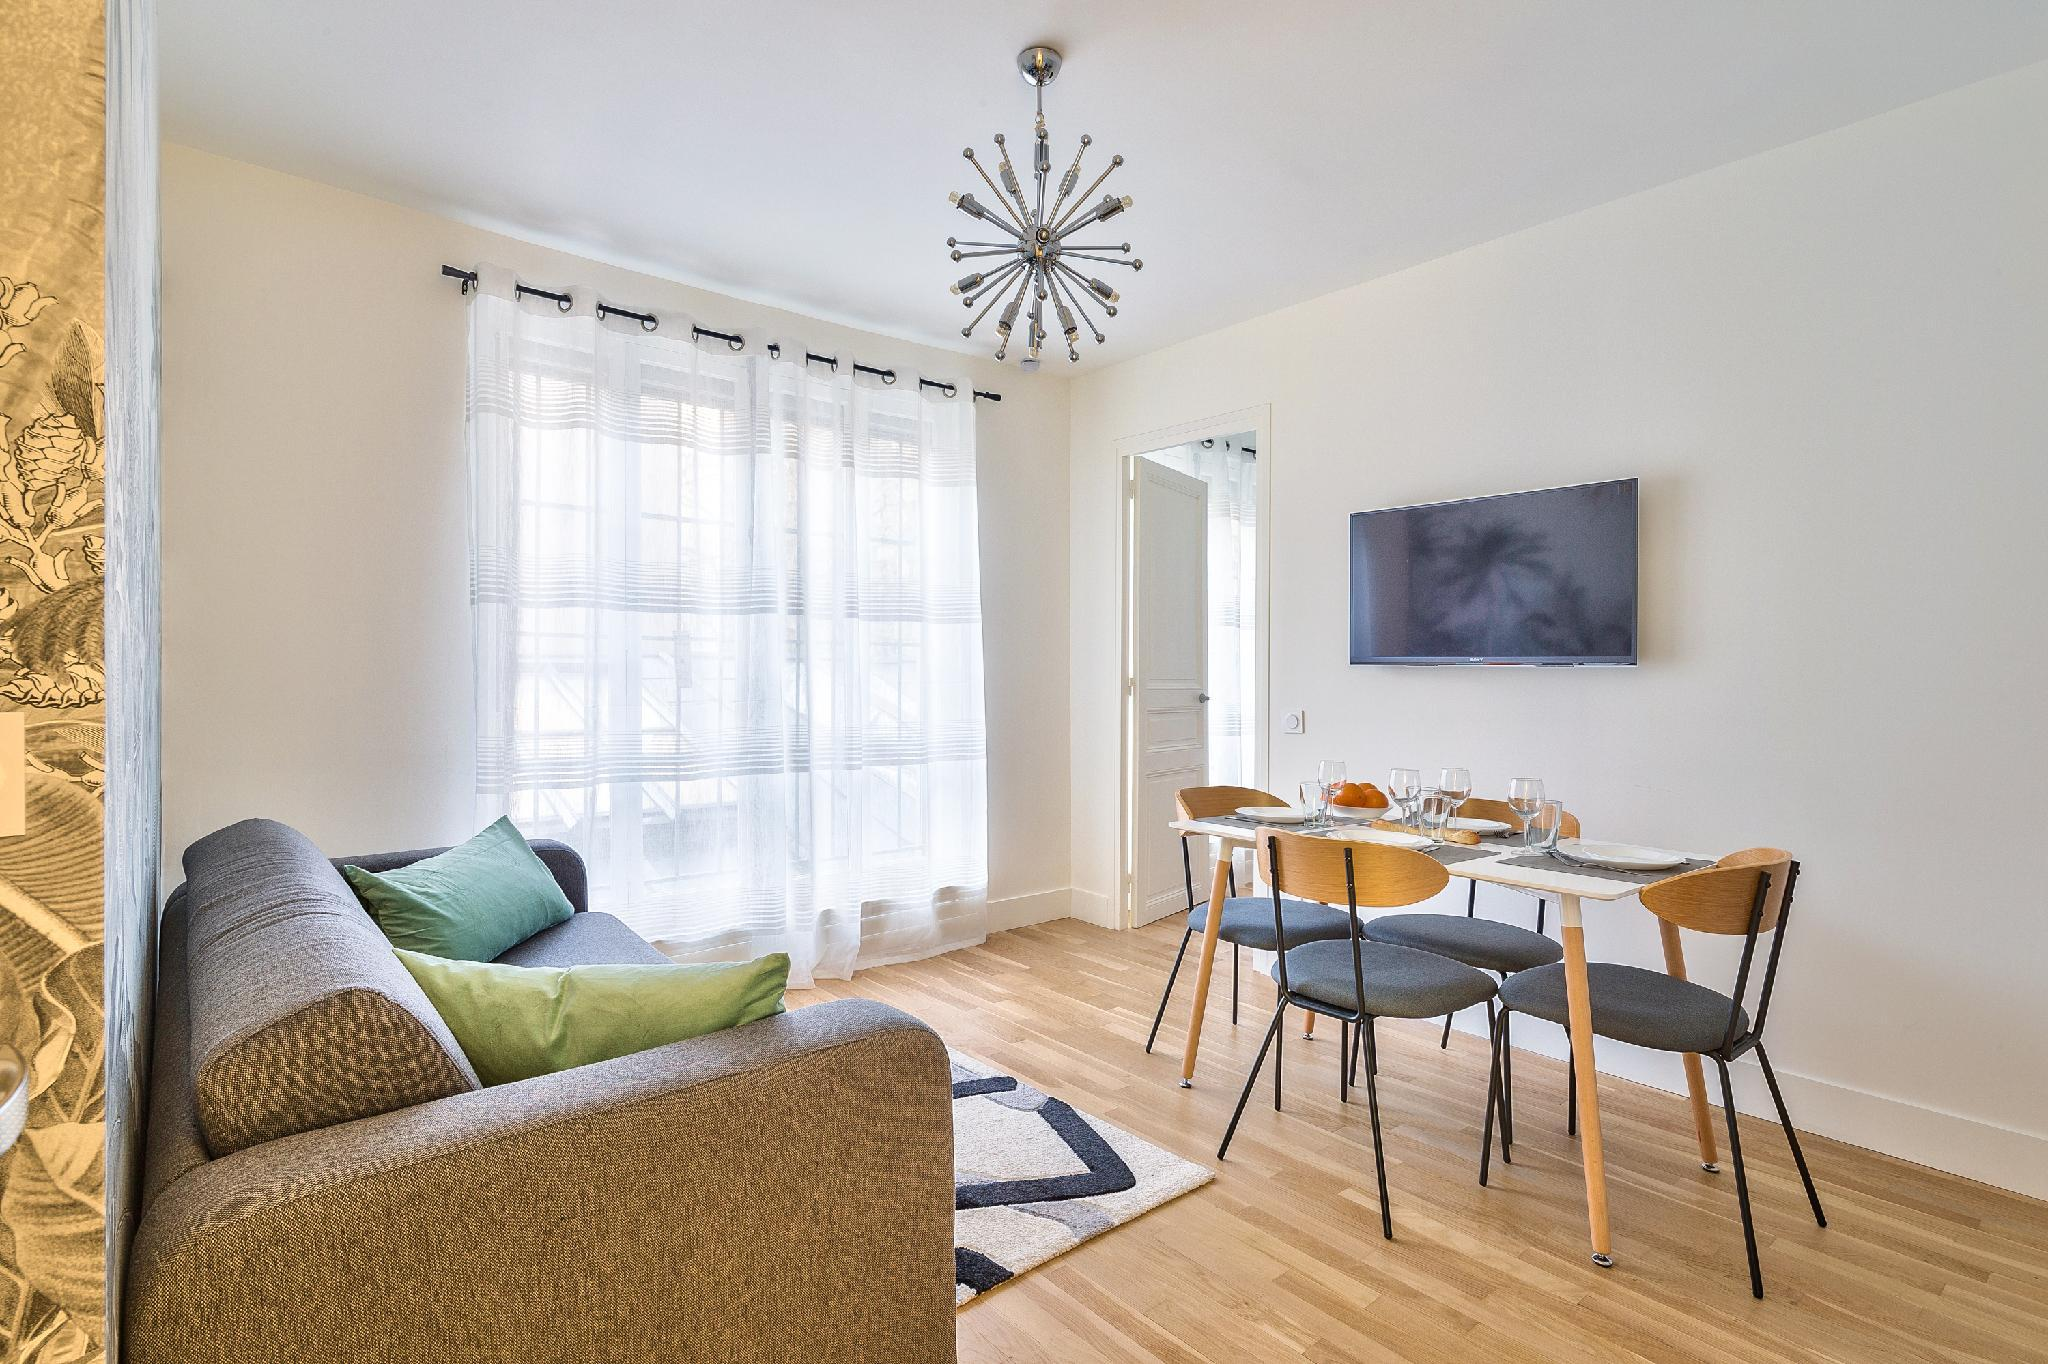 NEW Paradis 2 - Great Flat In Paris